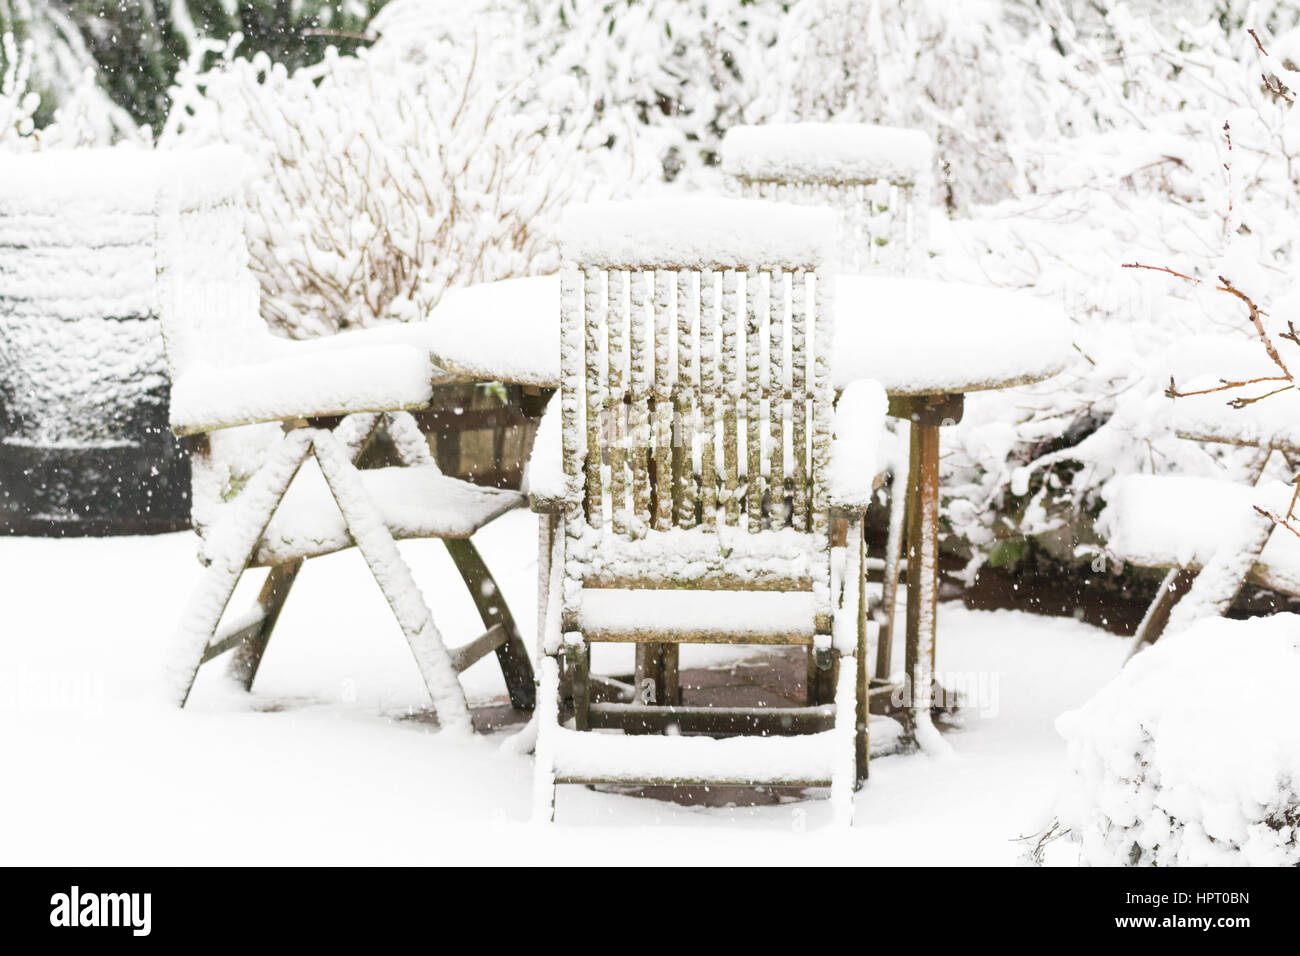 garden in snow - garden furniture, table and chairs covered in deep snow - Stock Image